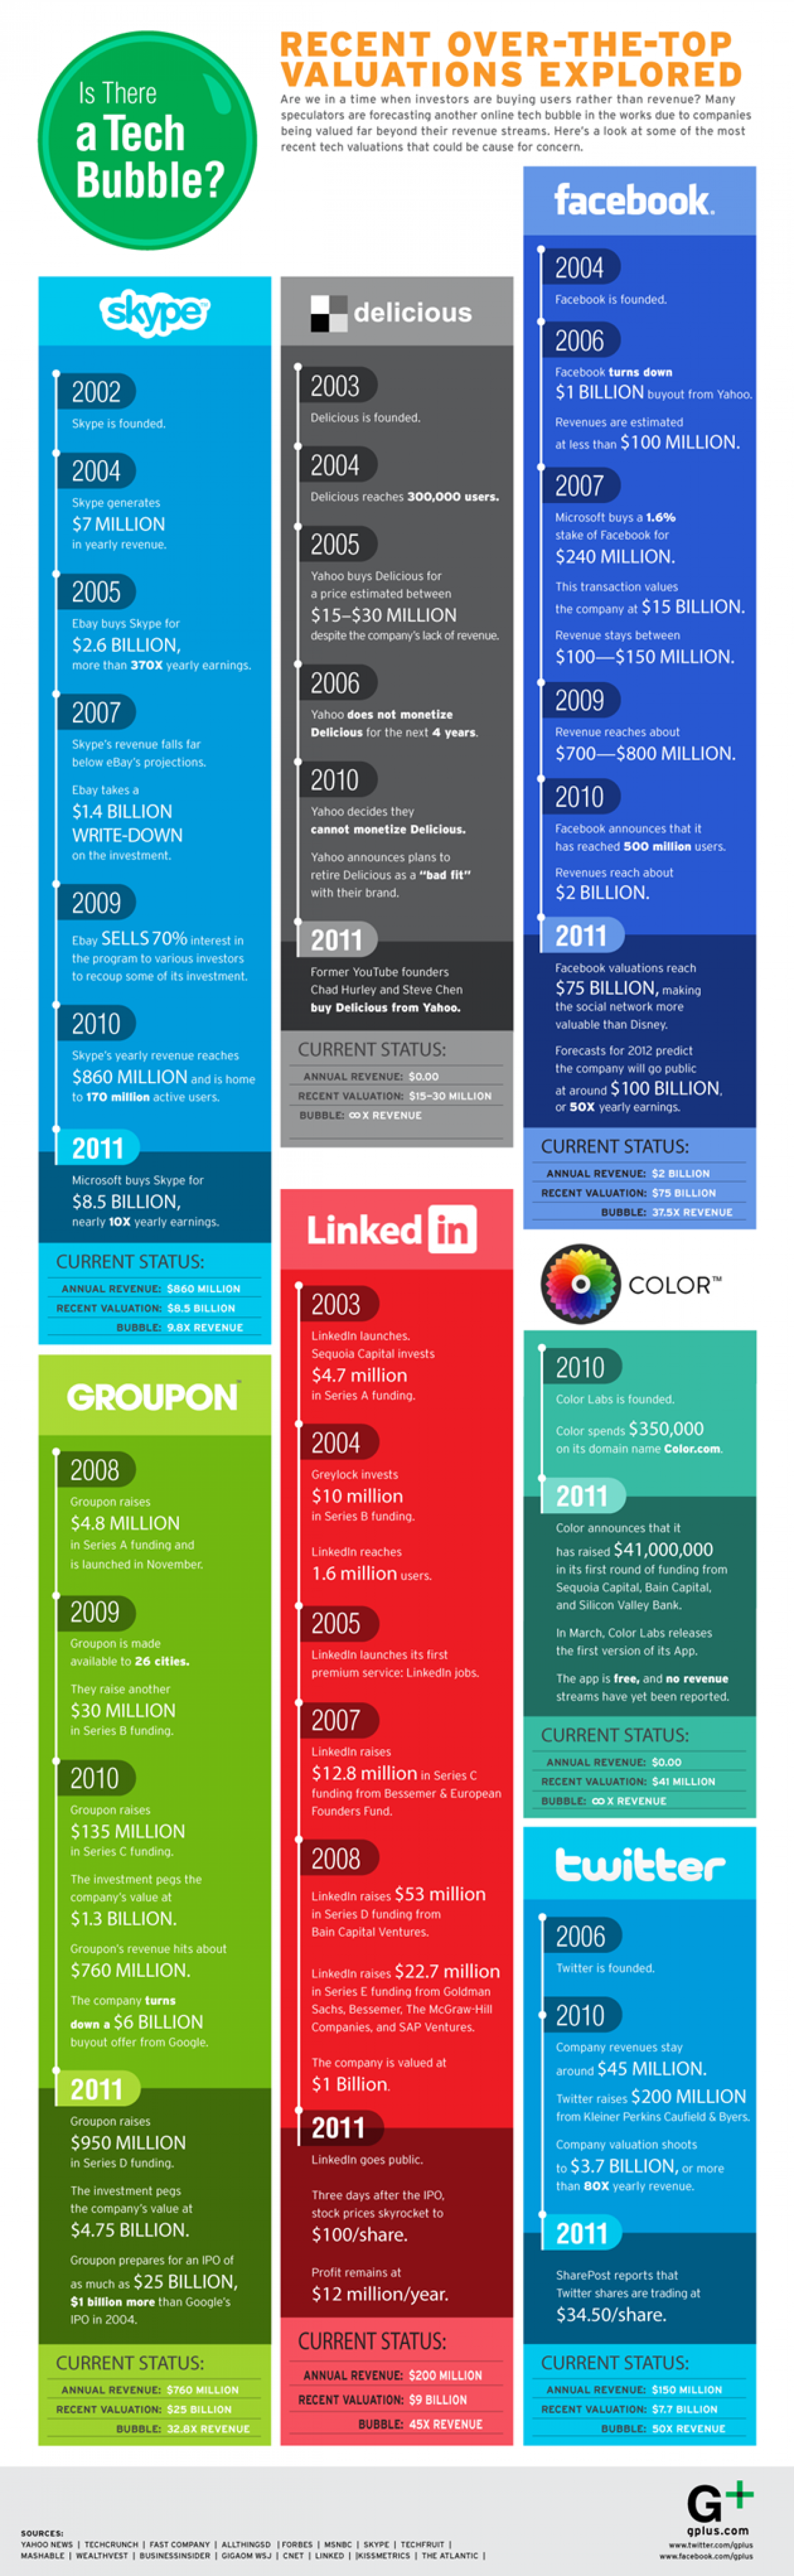 Recent Over the Top Valuations Explored  Infographic